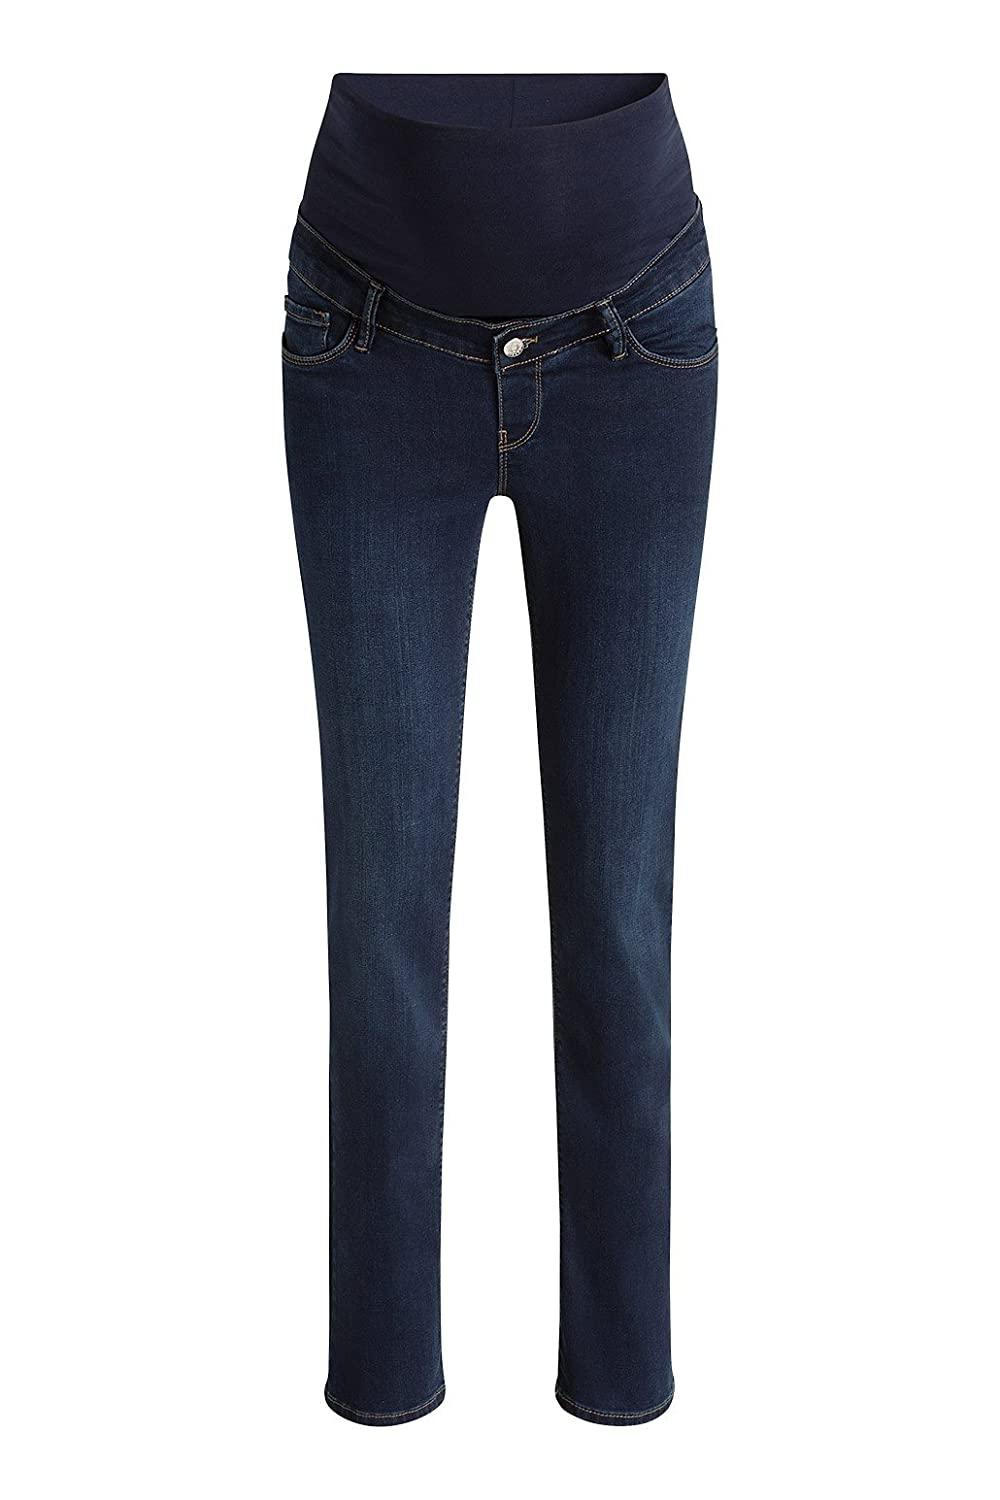 ESPRIT Maternity Women's Pants Denim OTB Straight Jeans TASK LICENSE B.V. G8C009